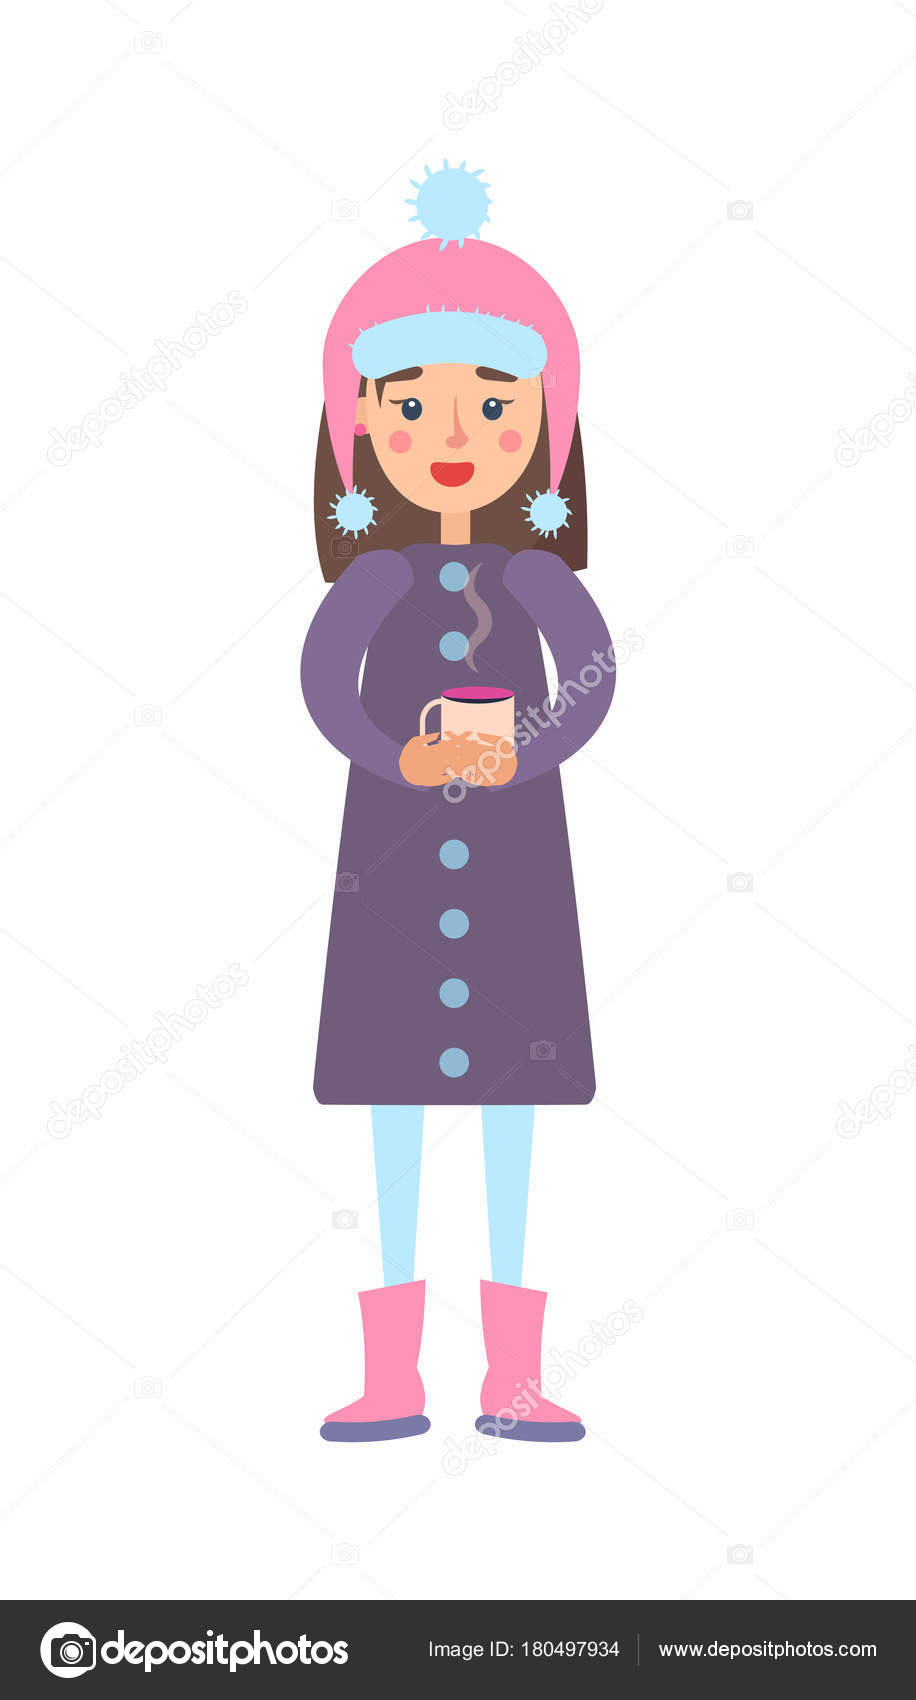 6c735480fde8 Girl Warm Winter Cloth with Cup of Hot Tea Drink — Stock Vector ...